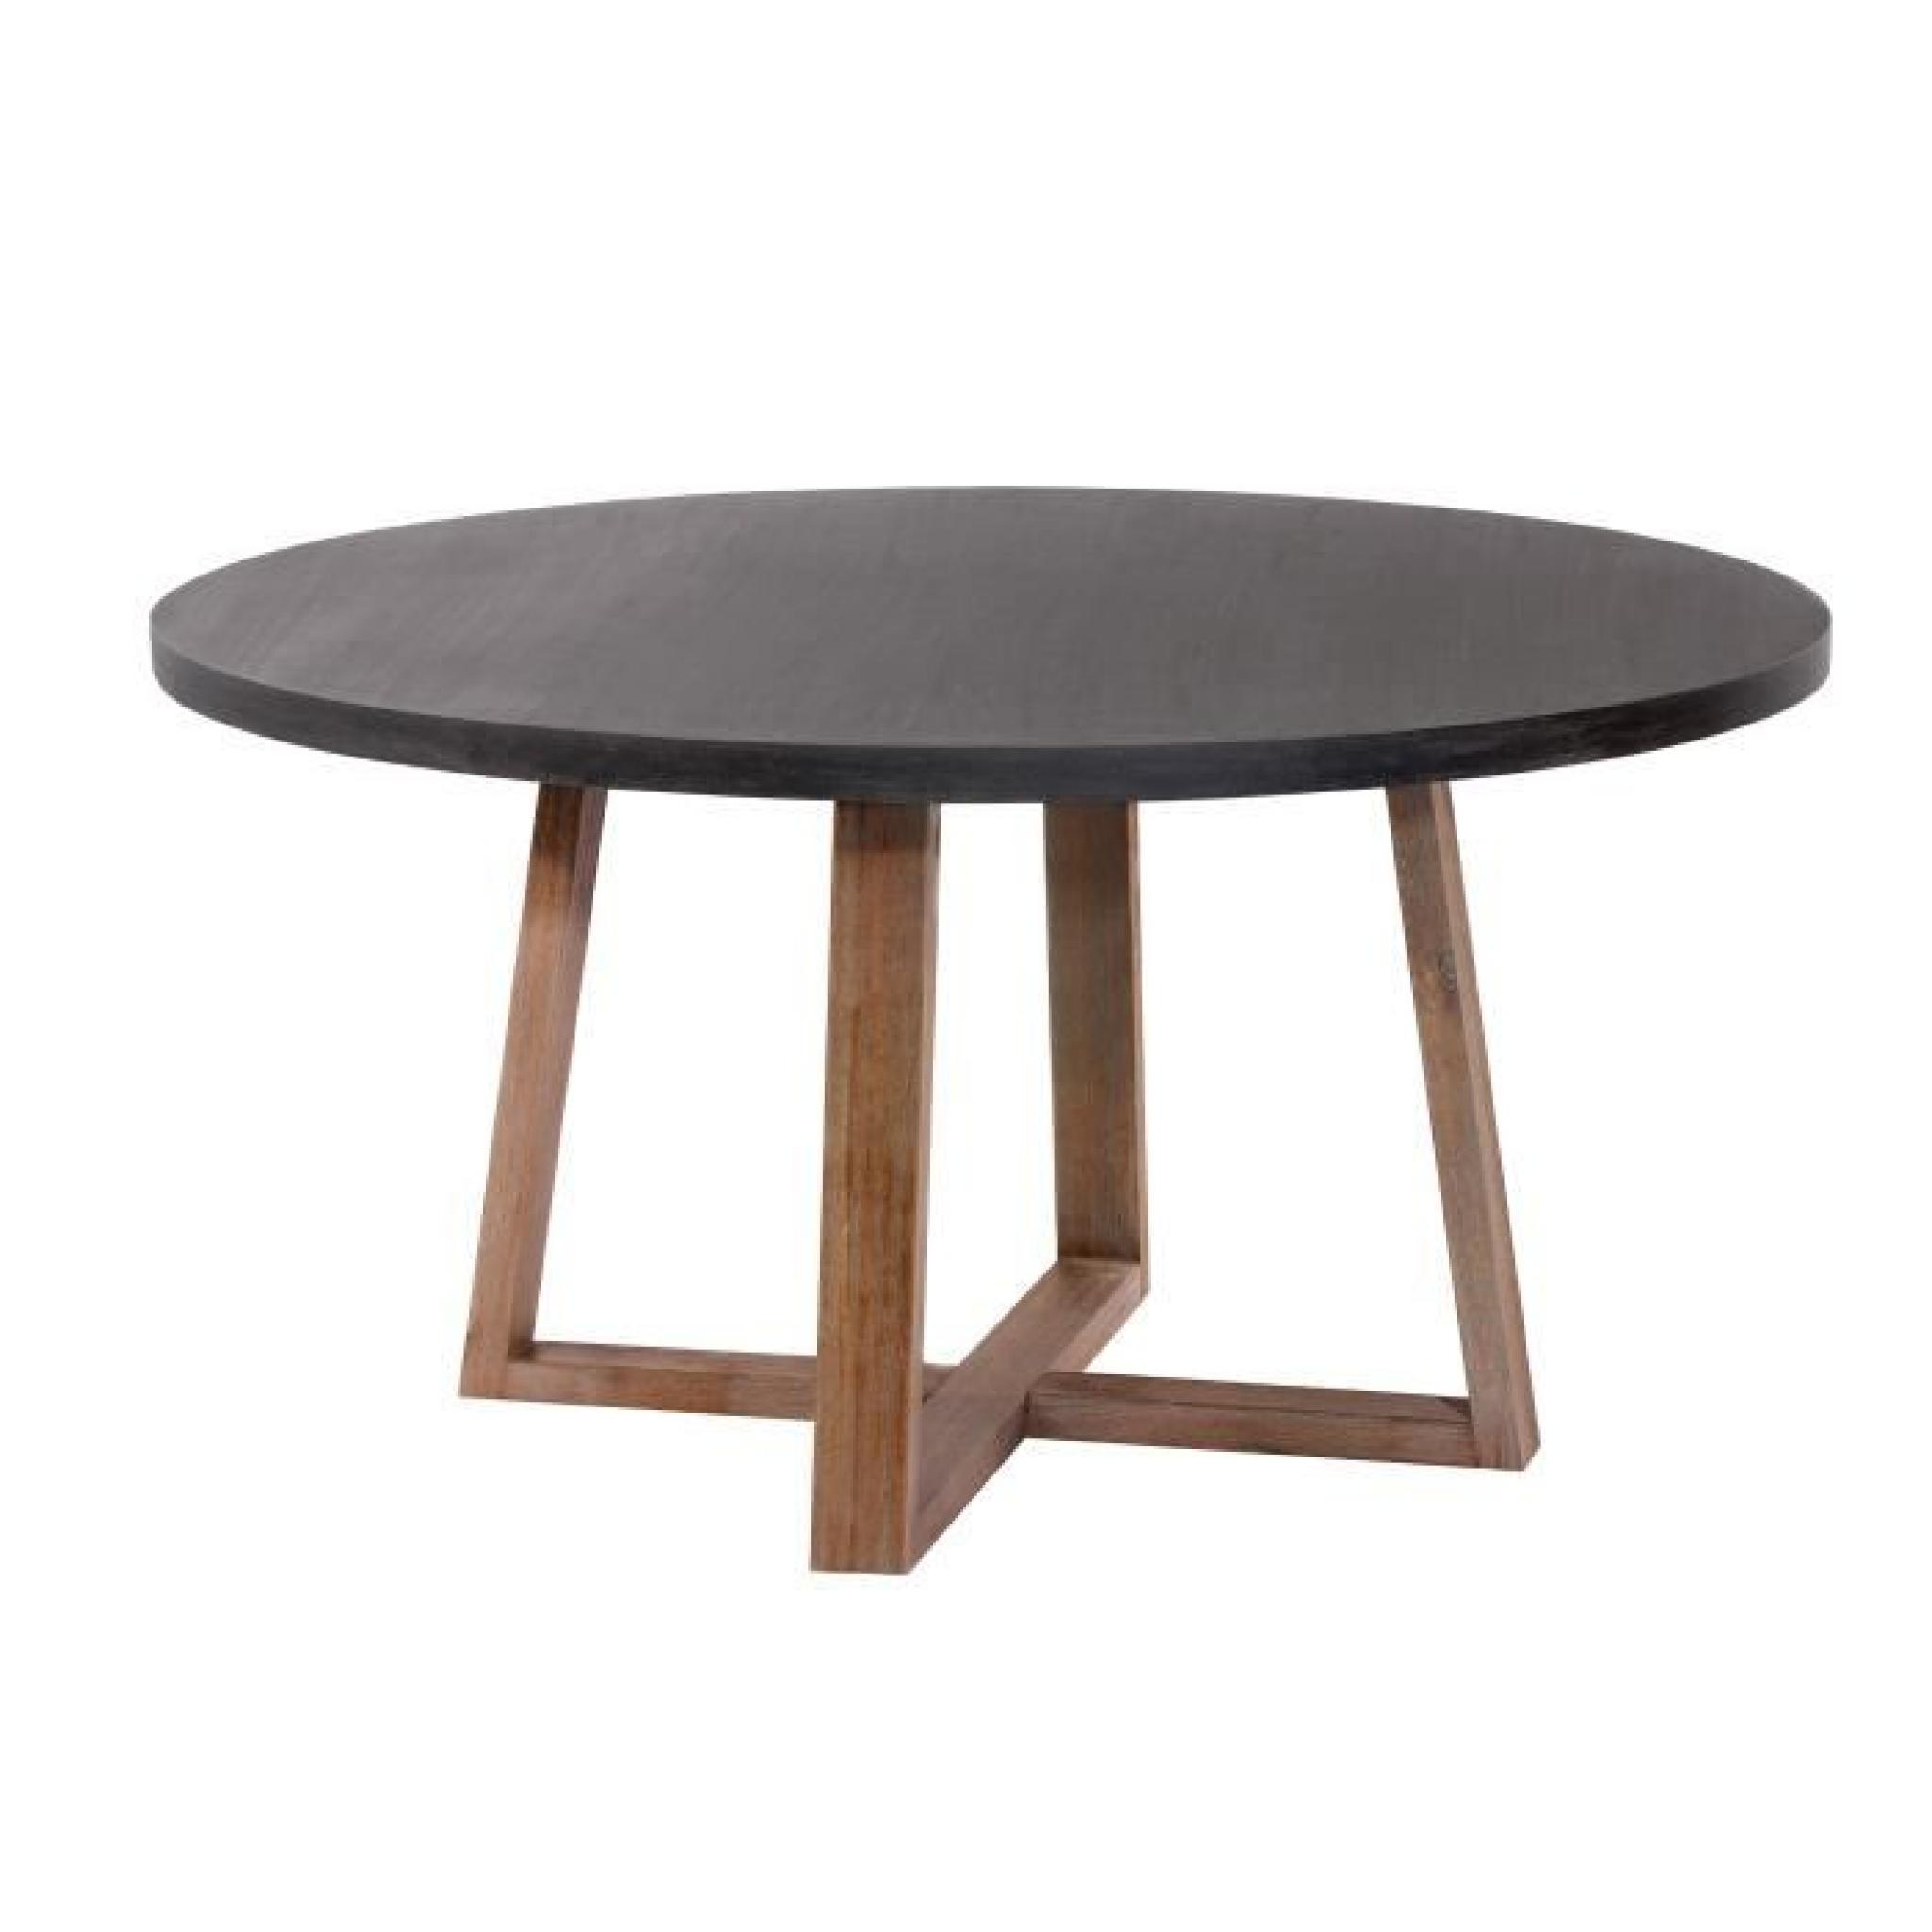 Table ronde tambora 140 cm achat vente table salle a for Table salle a manger 120 cm